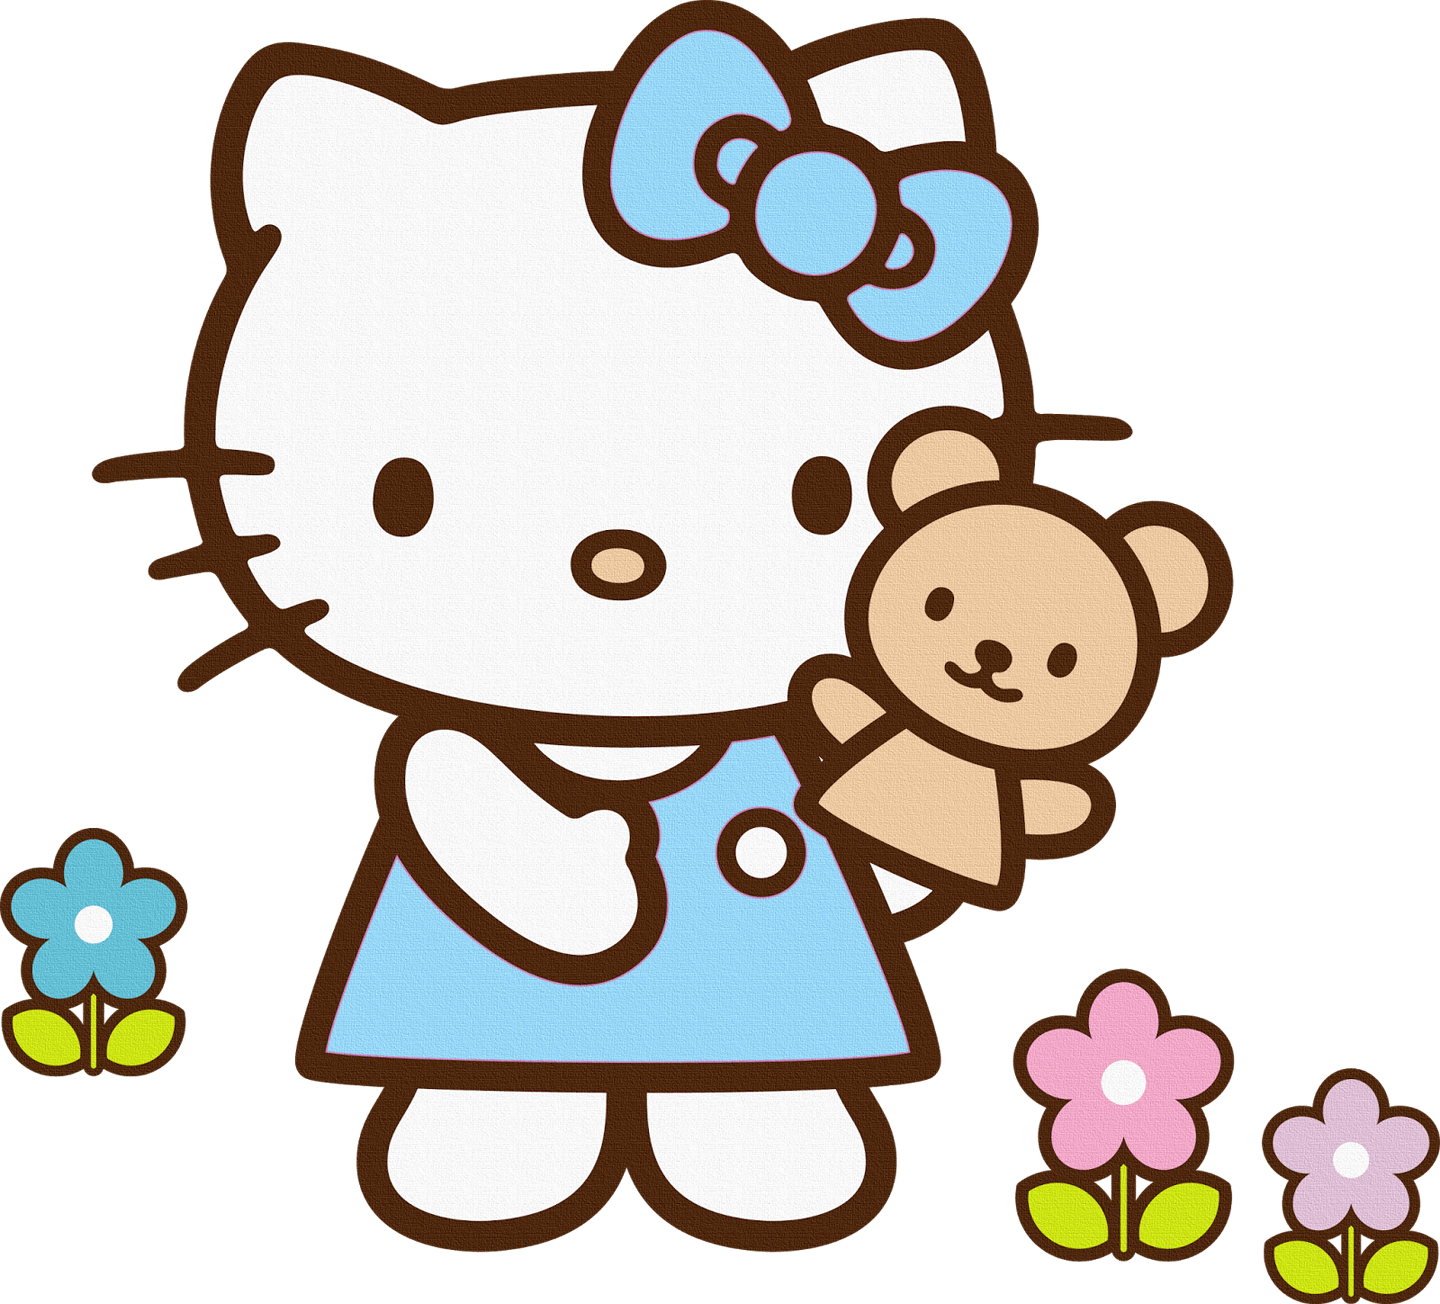 Free Hello Kitty Clipart 2, Download Free Clip Art, Free Clip Art